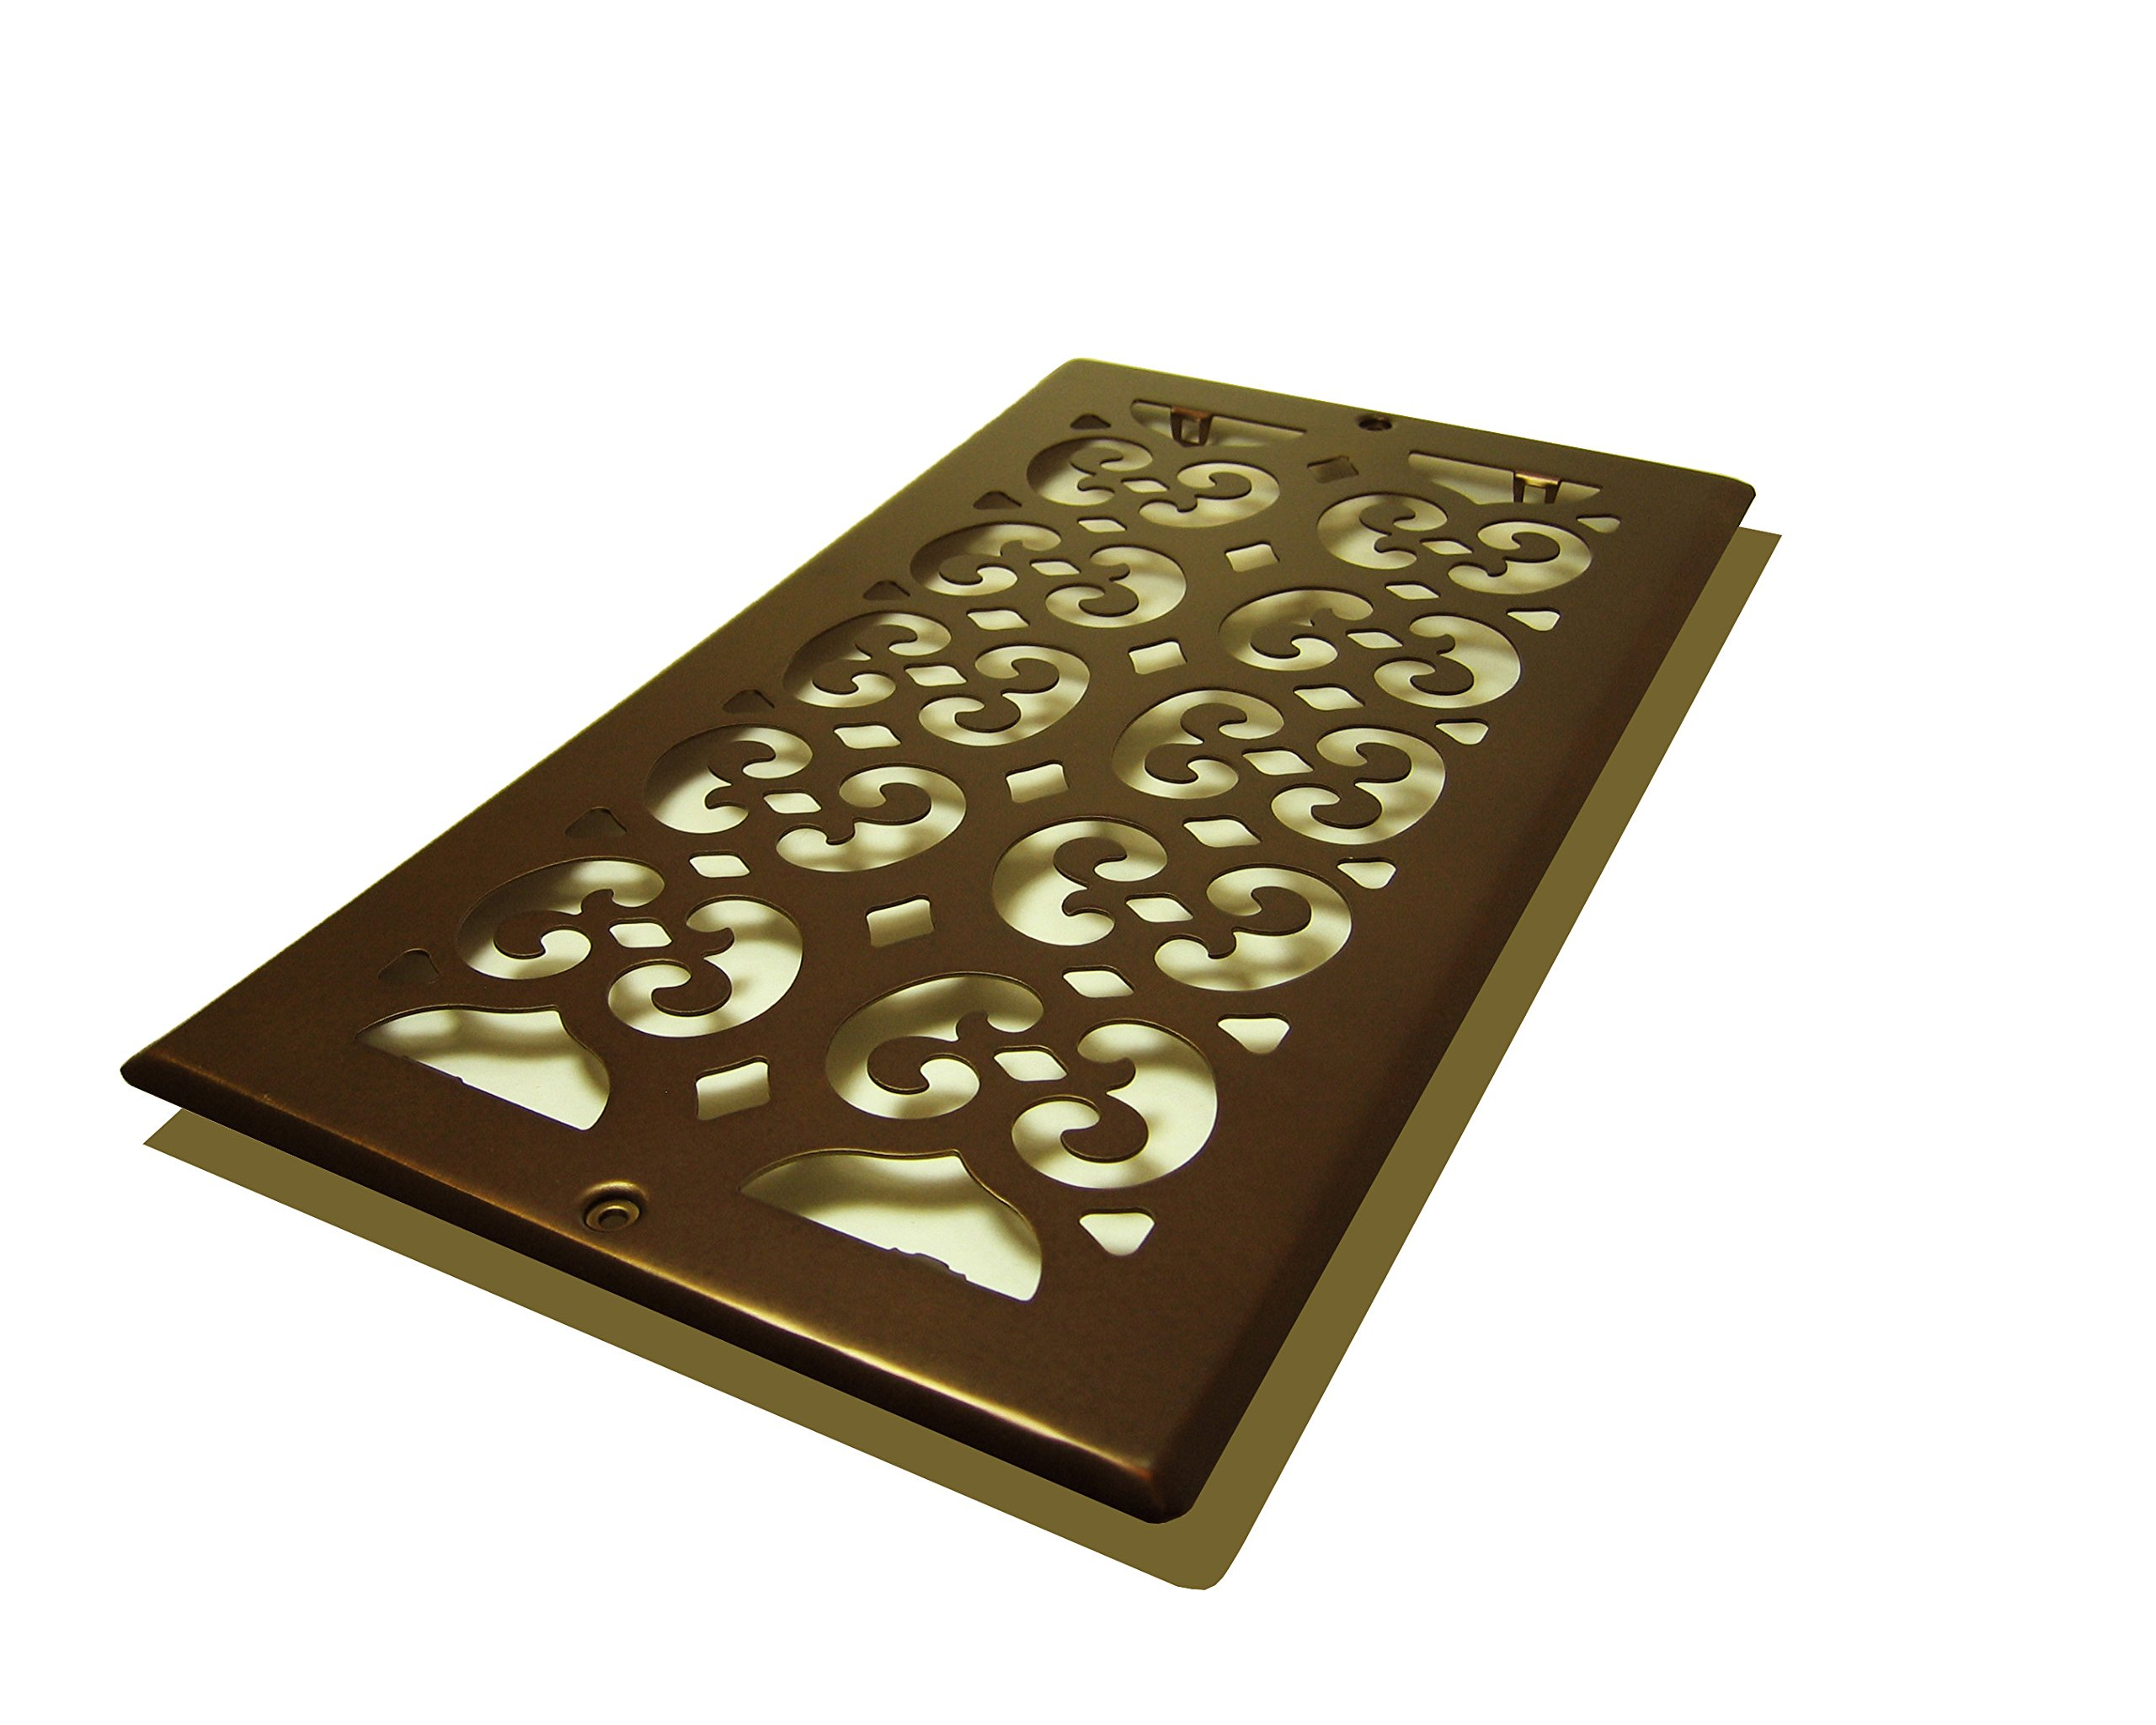 Decor Grates SP612R-RB Scroll Plated Return, 6-Inch by 12-Inch, Rubbed Bronze